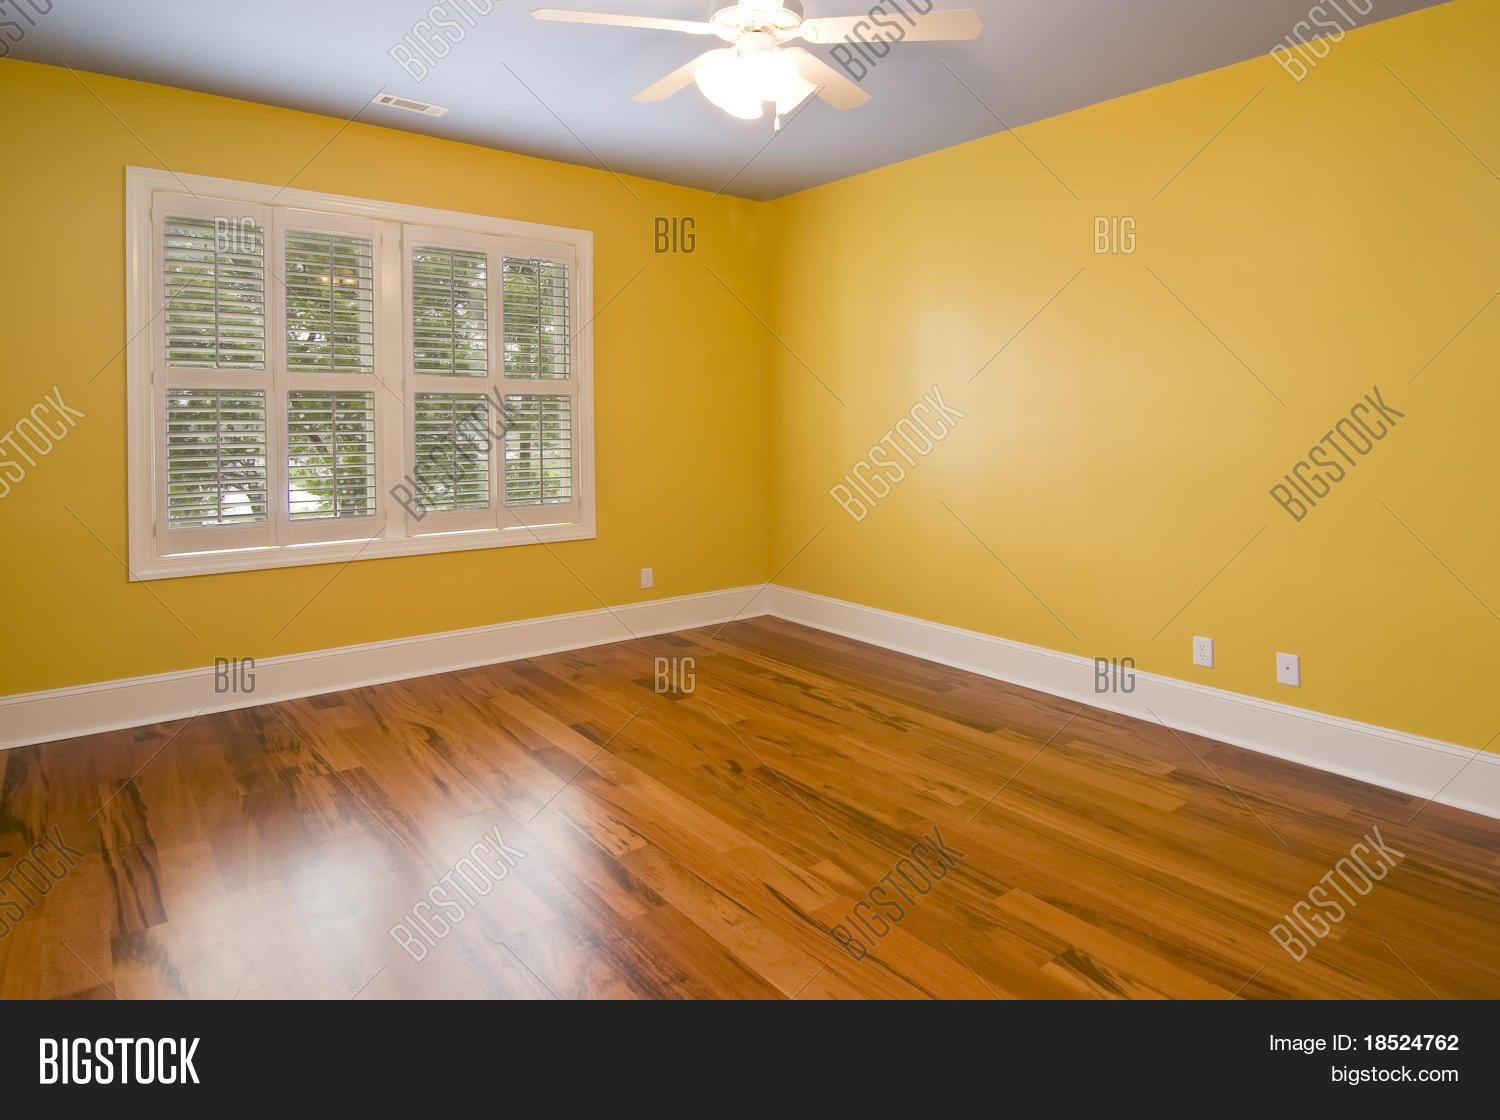 Yellow Walls Empty Room Yellow Walls View Image & Photo  Bigstock